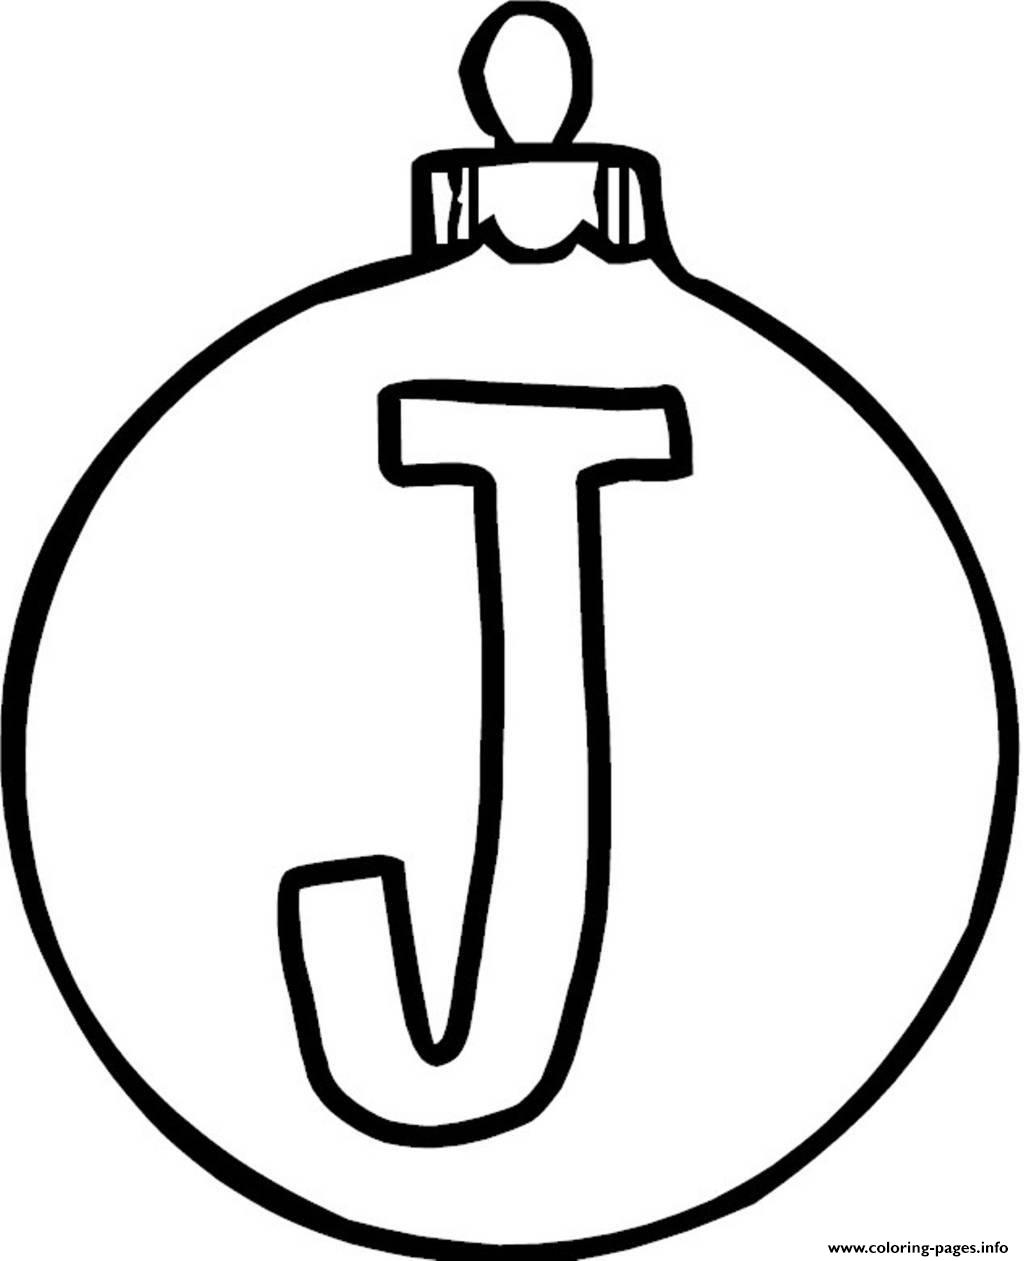 Xmas Ornaments Coloring Pages With Christmas Decorations 2059837